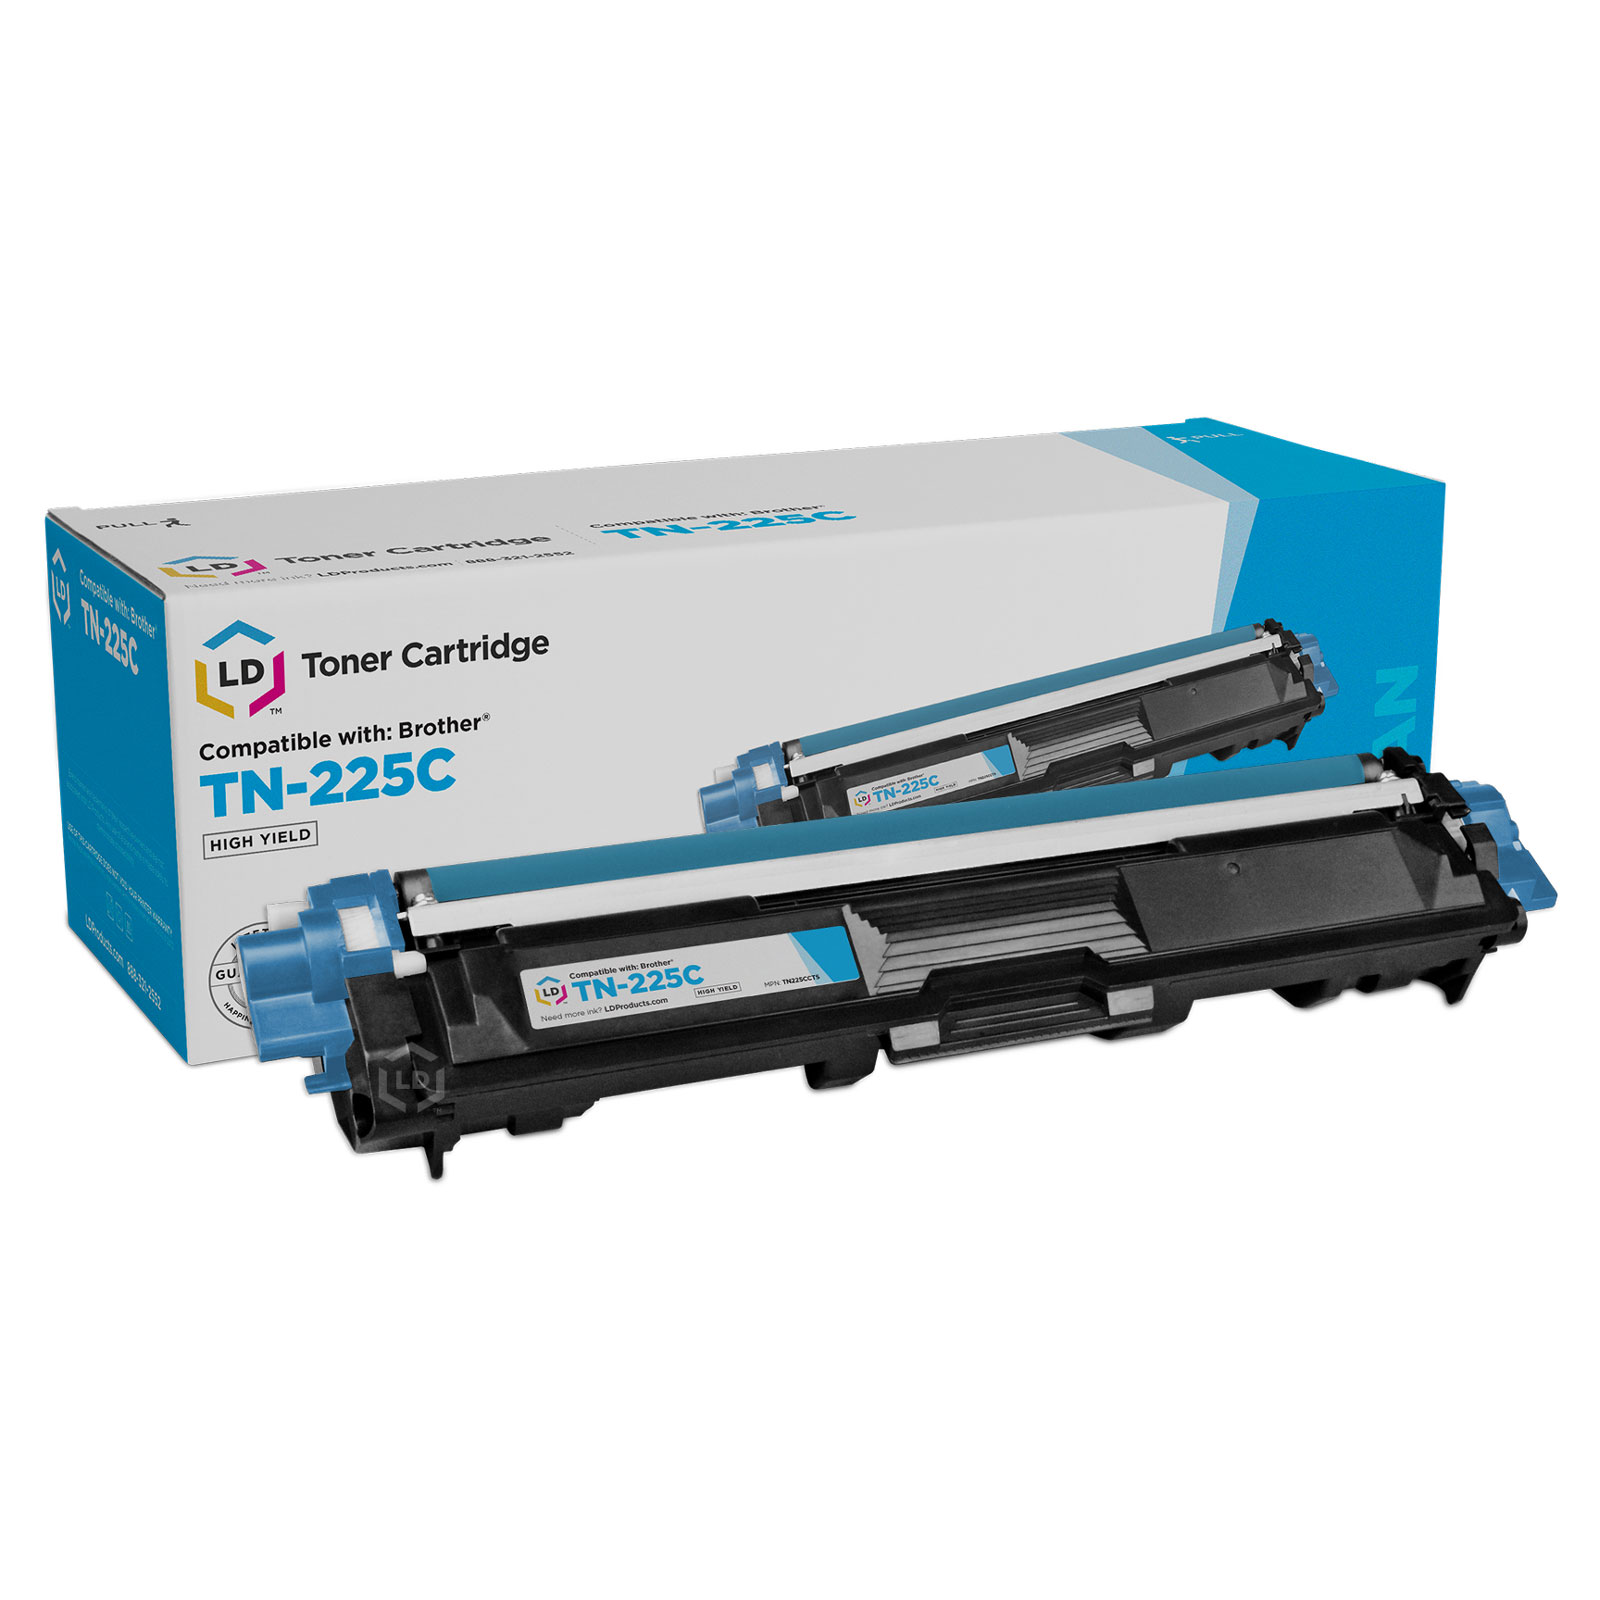 LD © Compatible Brother TN225 High Yield Cyan Laser Toner Cartridge for use in the HL-3140CW. HL-3170CDW, MFC-9130CW, MFC-9330CDW & MFC9340CDW Printers